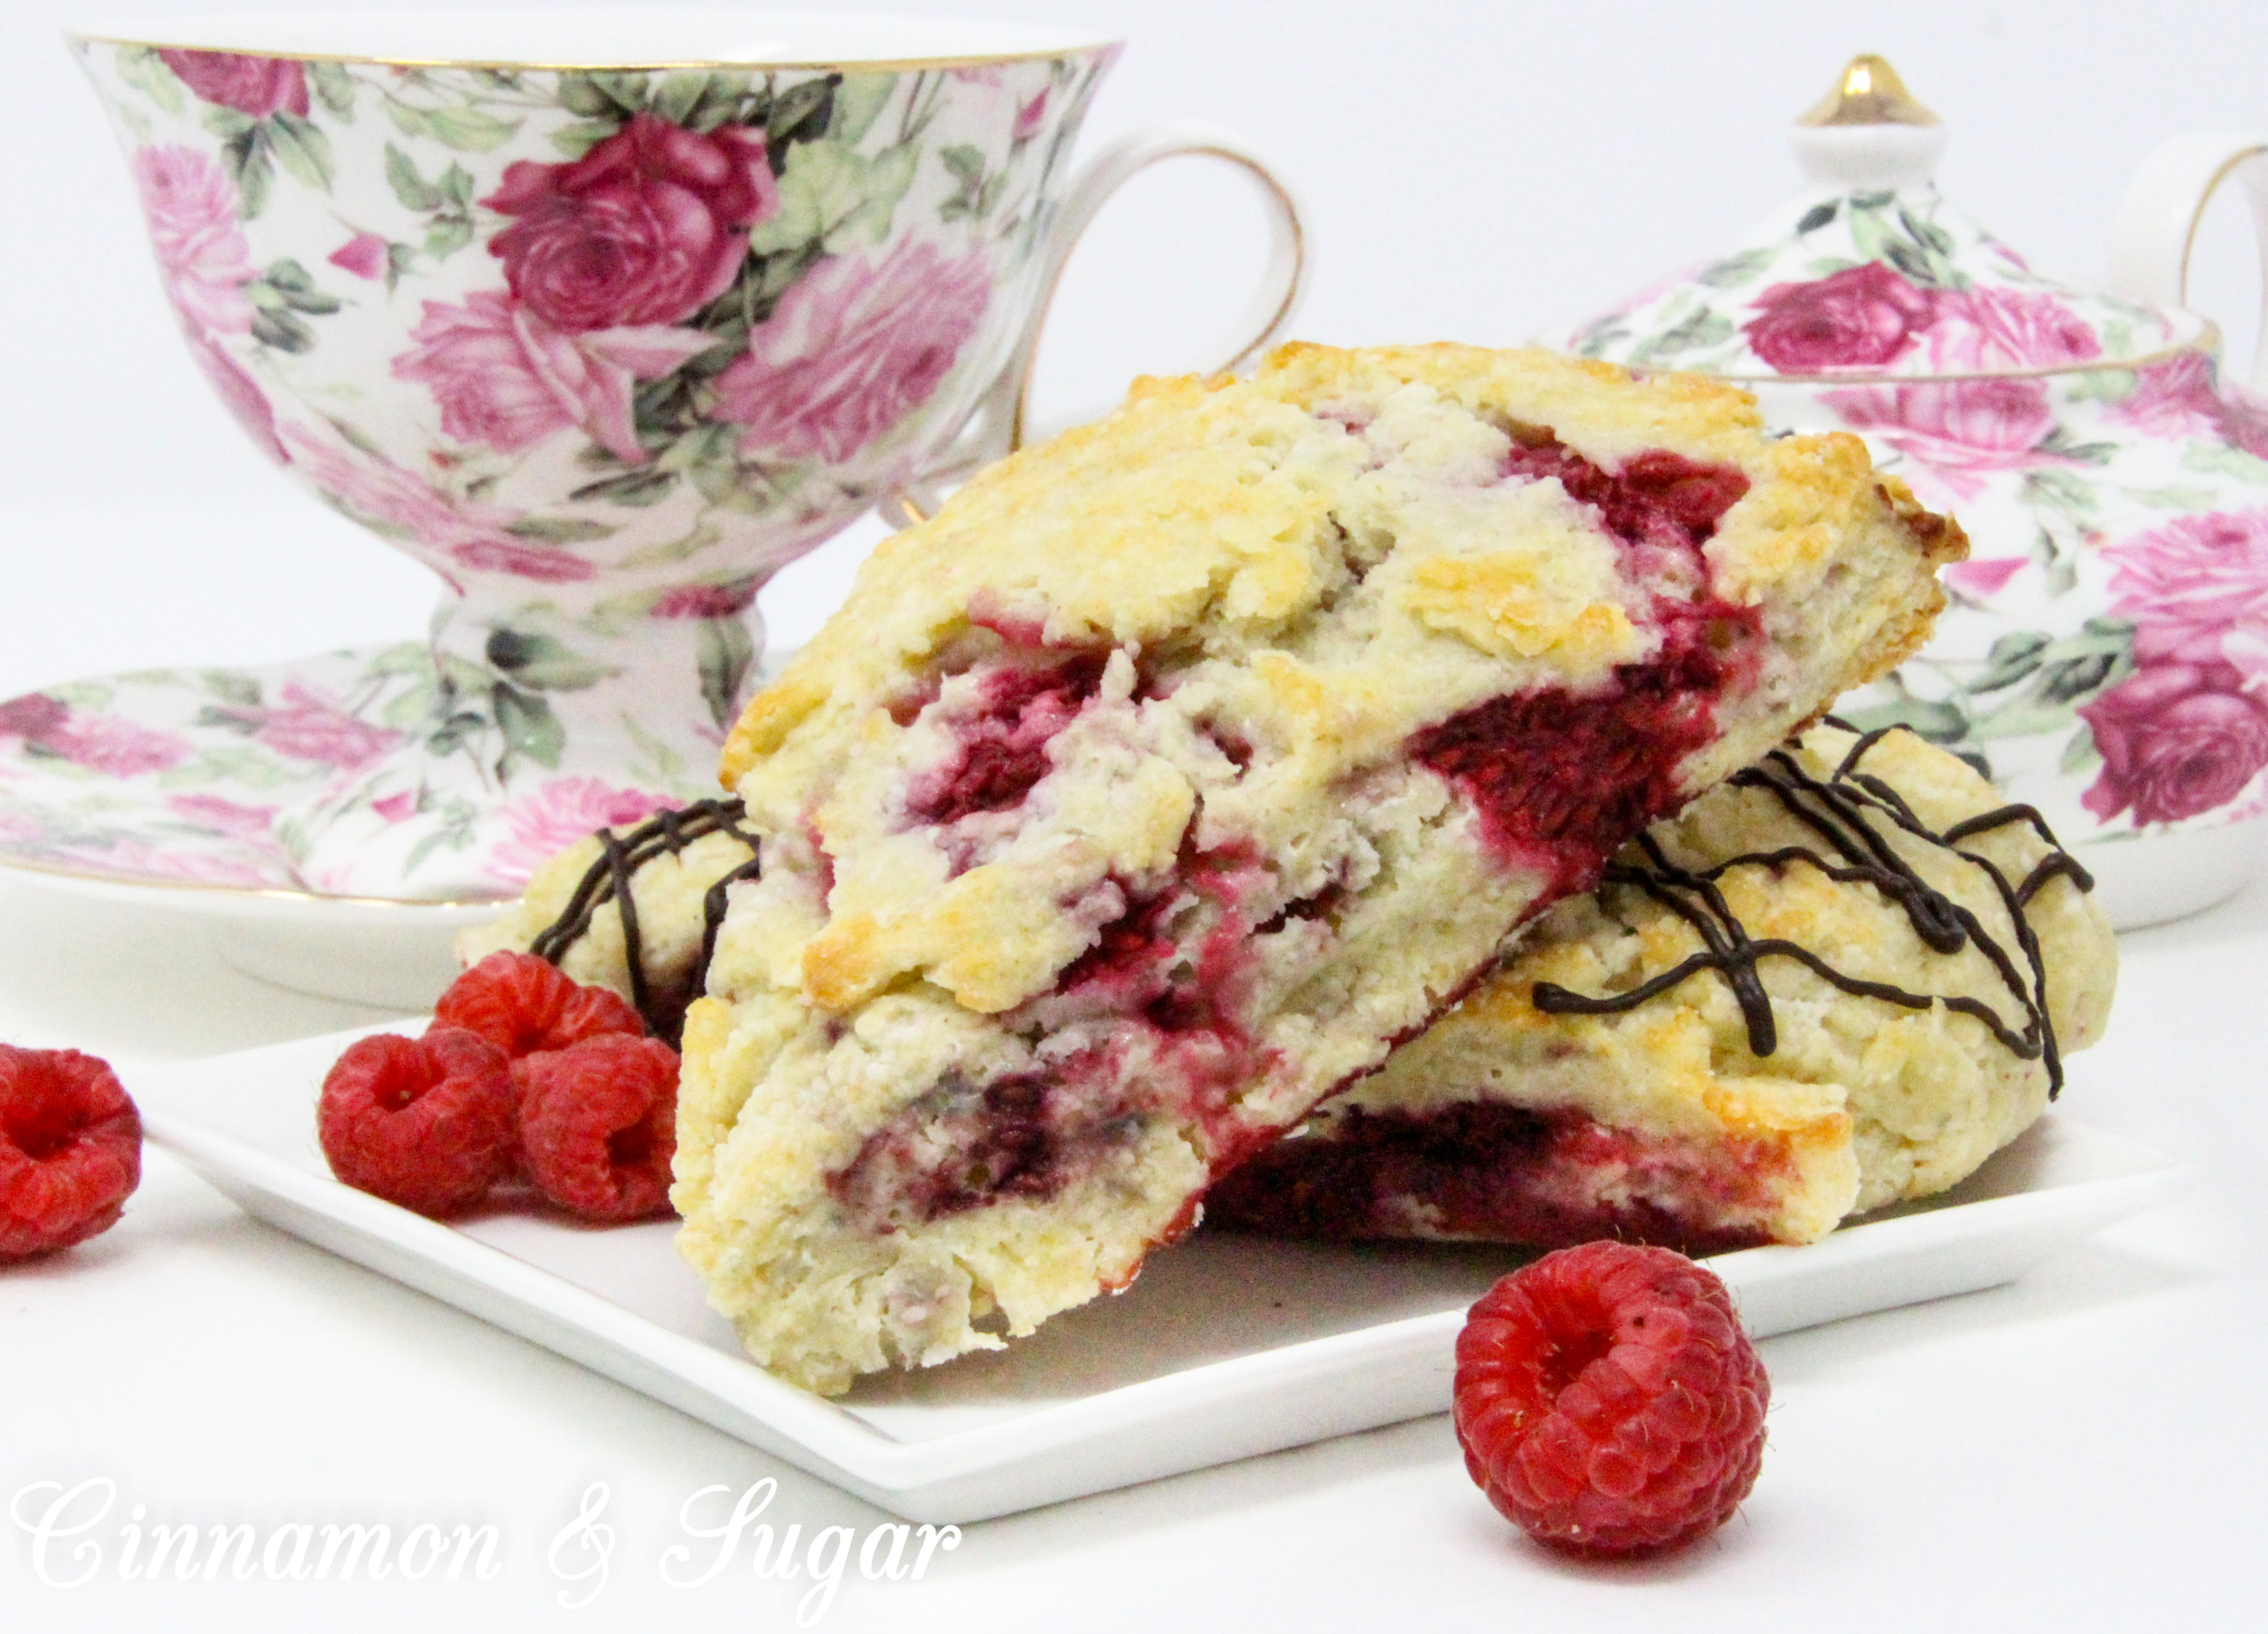 Raspberry Scones with Dark Chocolate Drizzle are rich, flaky, and flavorful, thanks to the addition of lemon oil and lemon peel, plus loads of raspberries. Drizzled with dark chocolate, the results are a scrumptious combination!